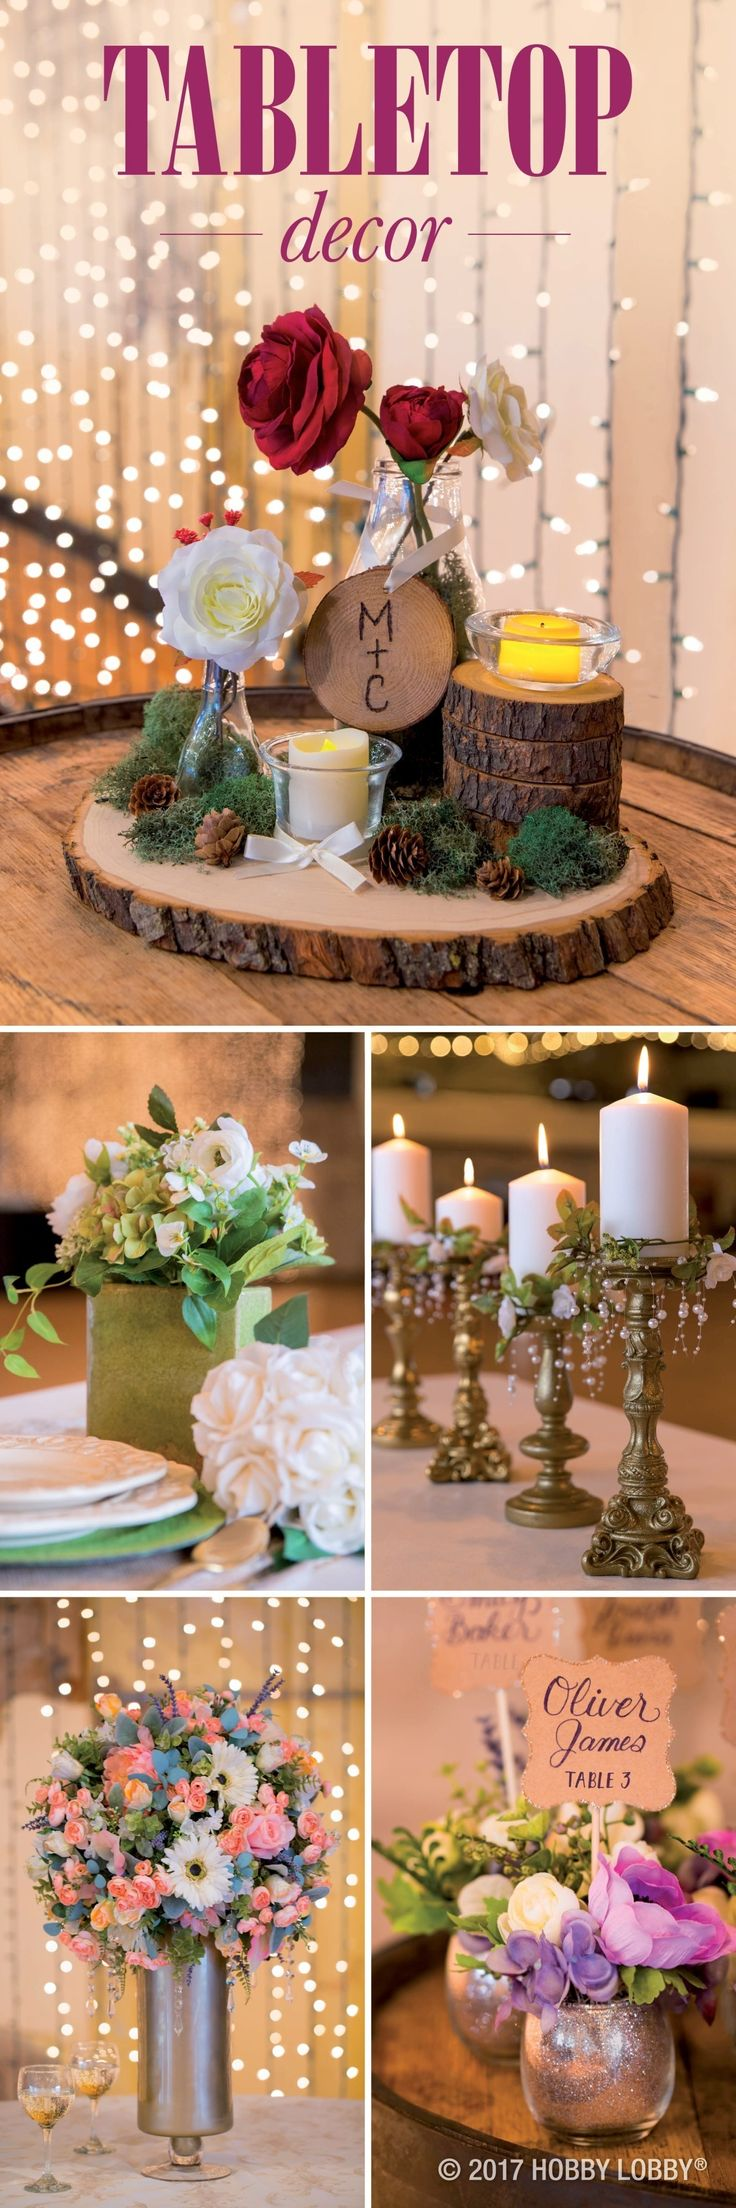 DIY centerpieces to inspire your party decor